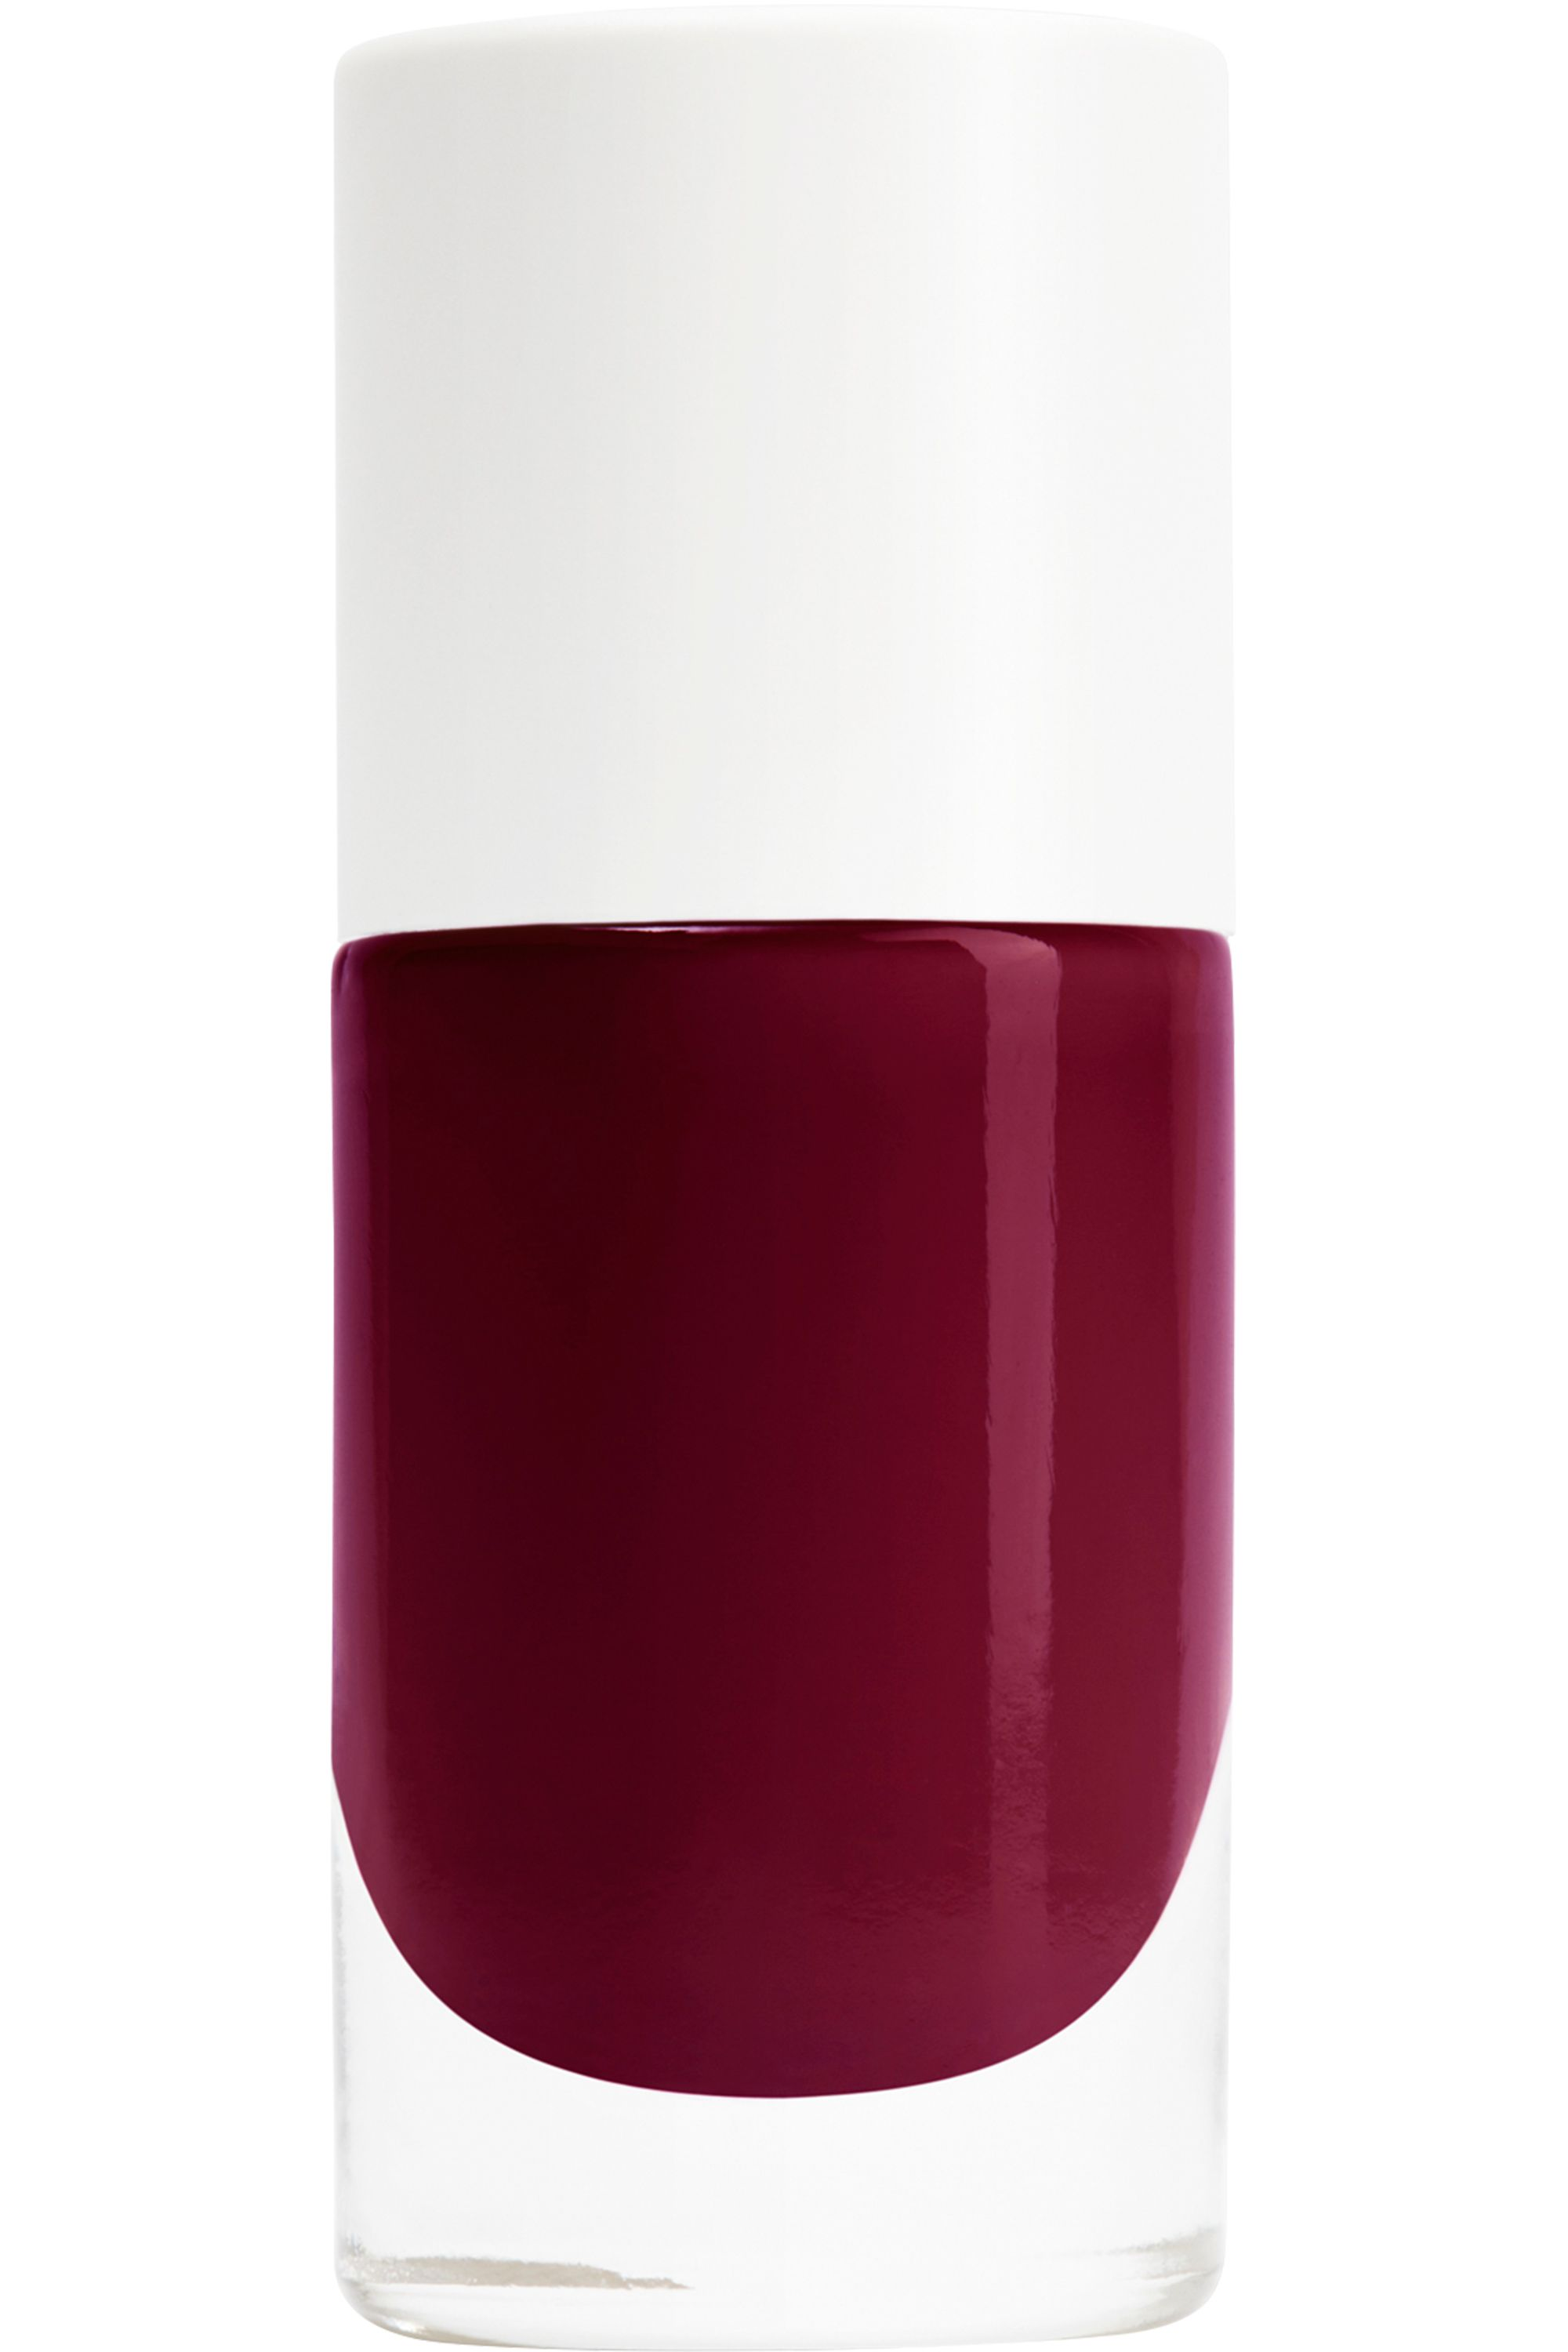 Blissim : Nailmatic - Vernis à ongles Pure Color - Pure Color Grace